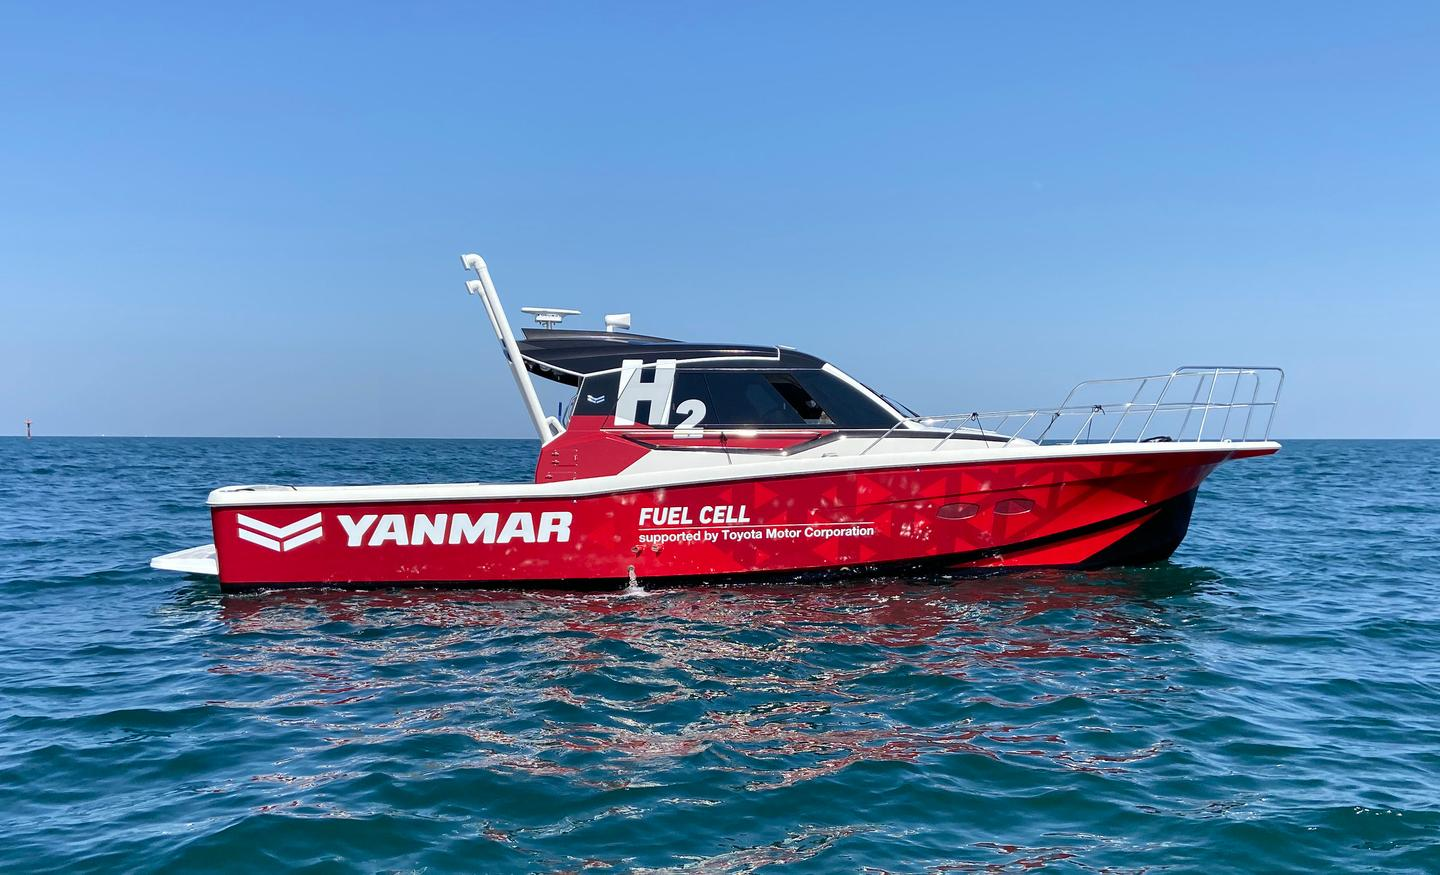 Encouraged by the on-the-water demonstration of the marine fuel cell system, Yanmar is now looking to scale up to multiple modules in larger vessels